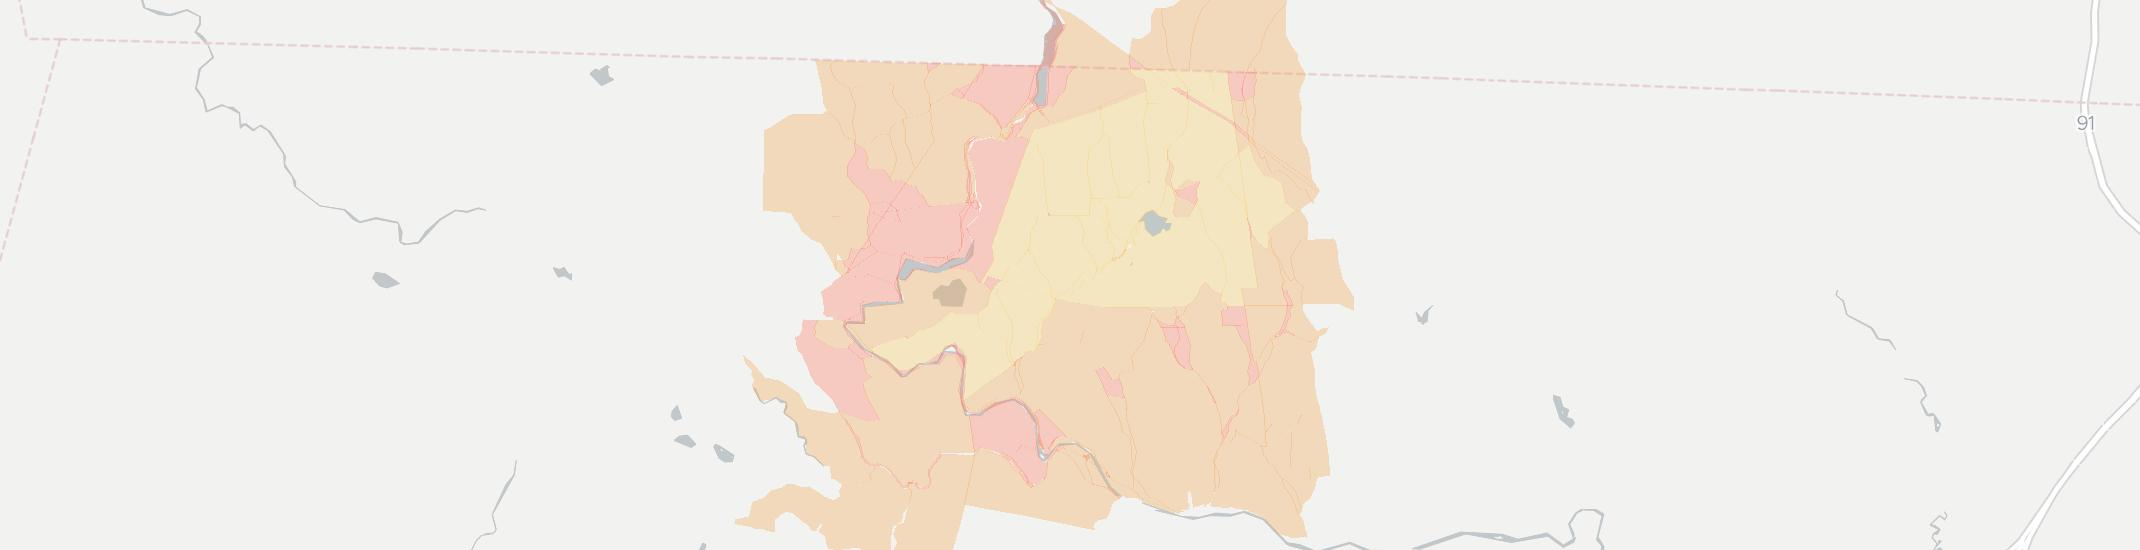 Rowe Internet Competition Map. Click for interactive map.